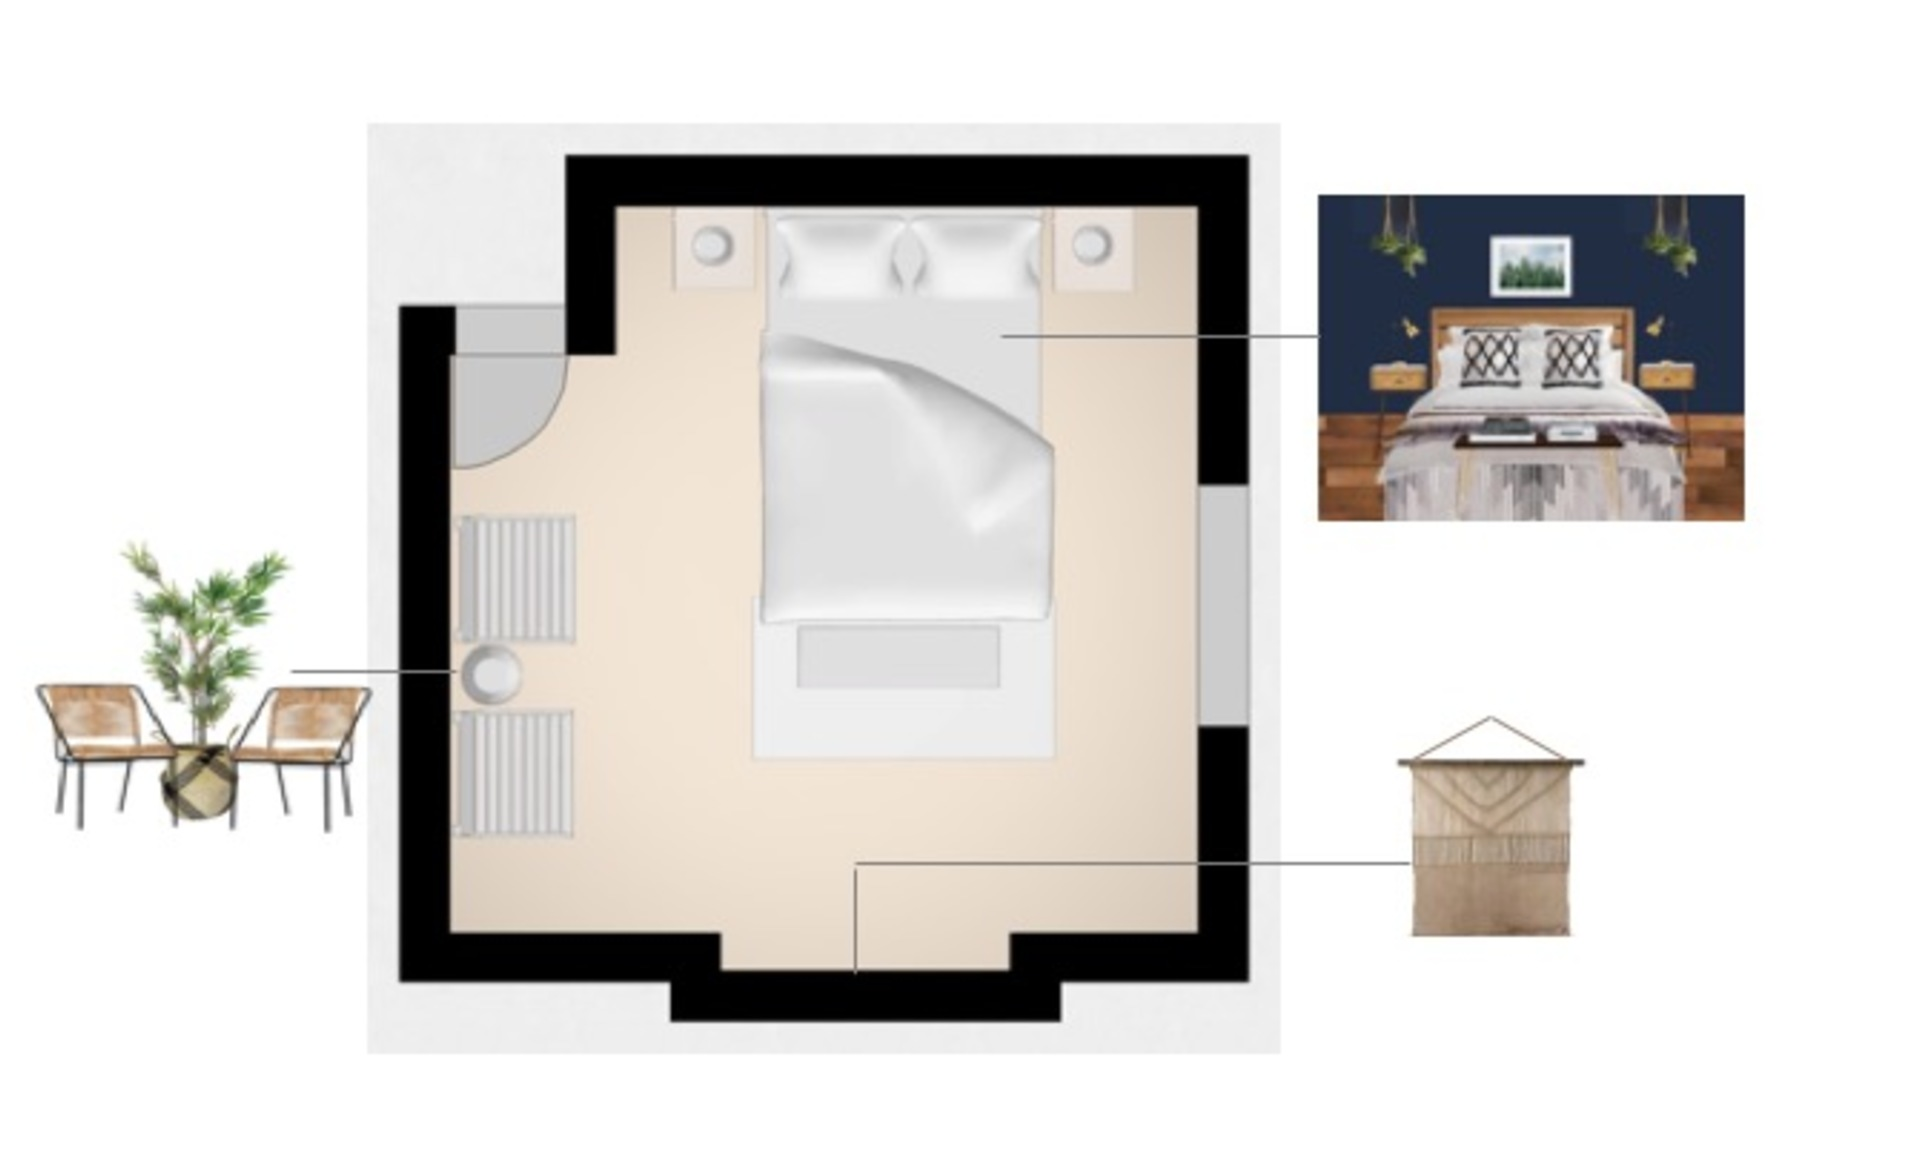 Mbr gwenbabayer masterbedroom floorplan